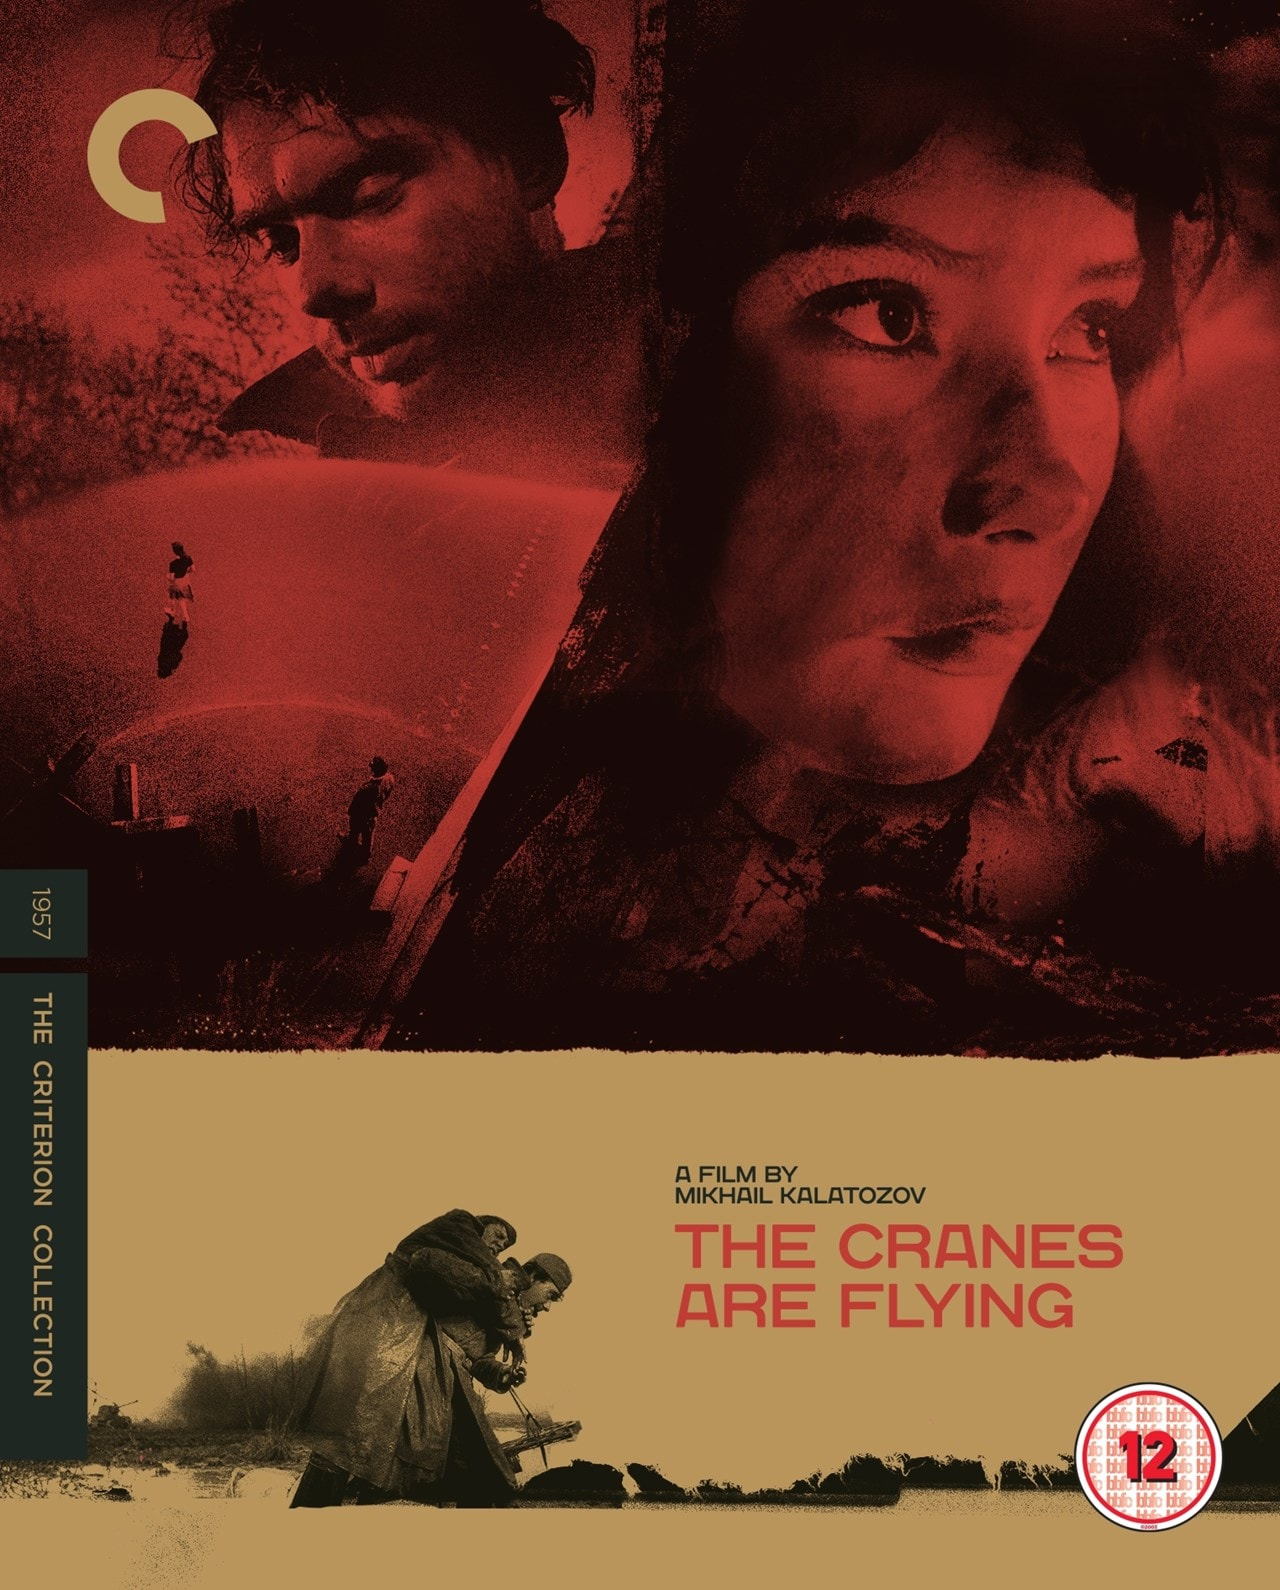 The Cranes Are Flying - The Criterion Collection - 1